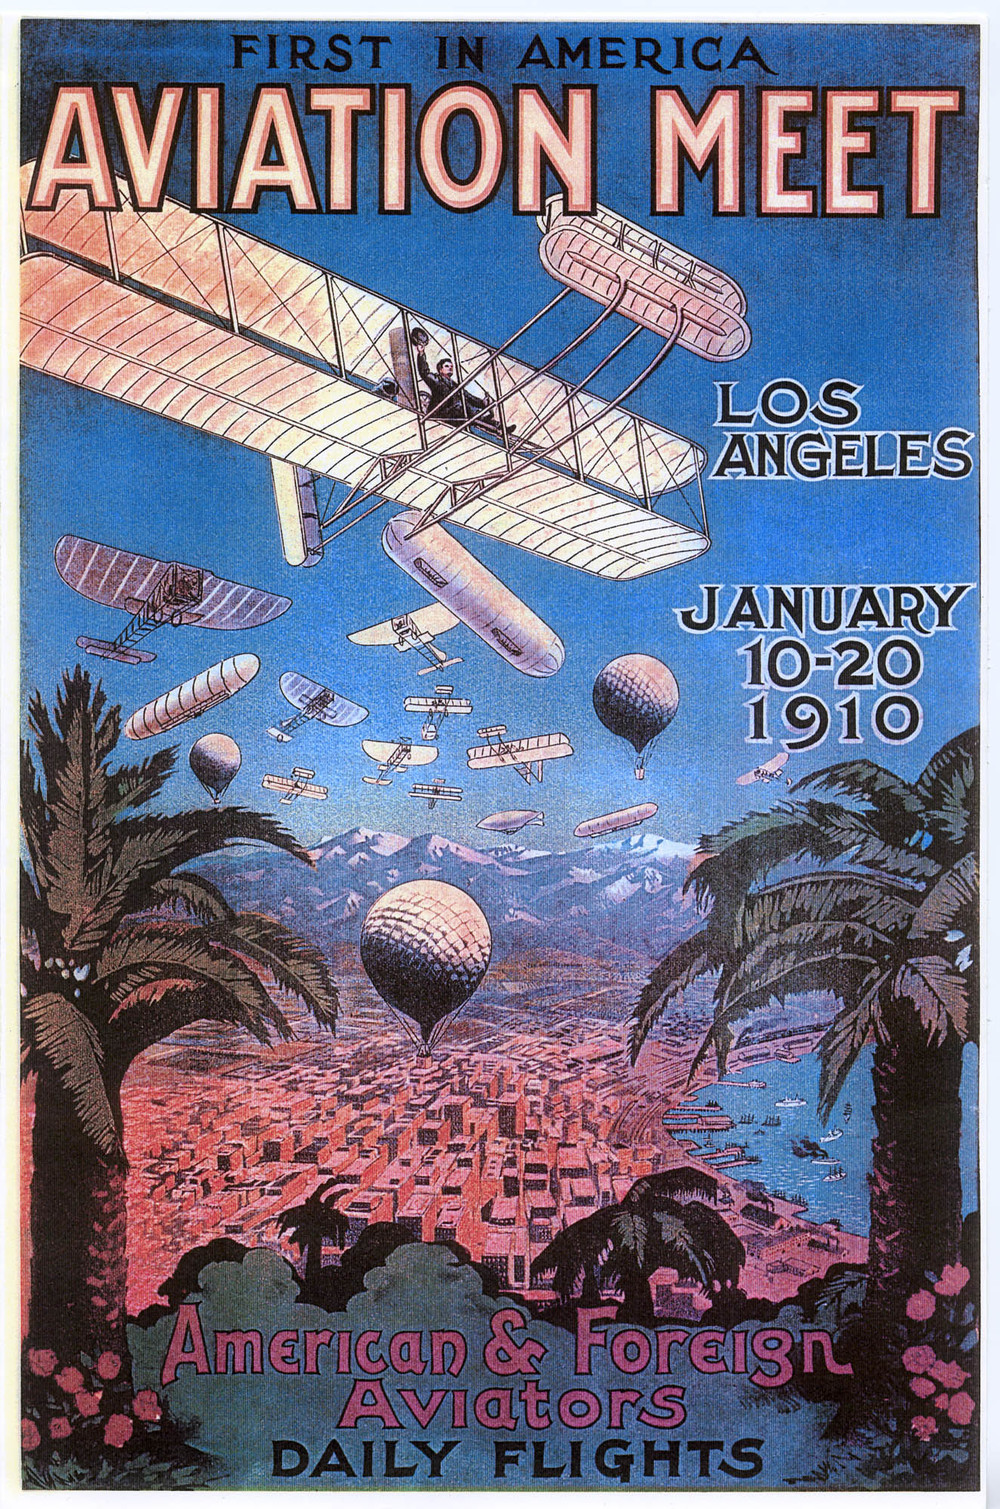 Promotional poster for the 1910 Air Meet.  (Image Courtesy of California State University, Dominguez Hills Archives)